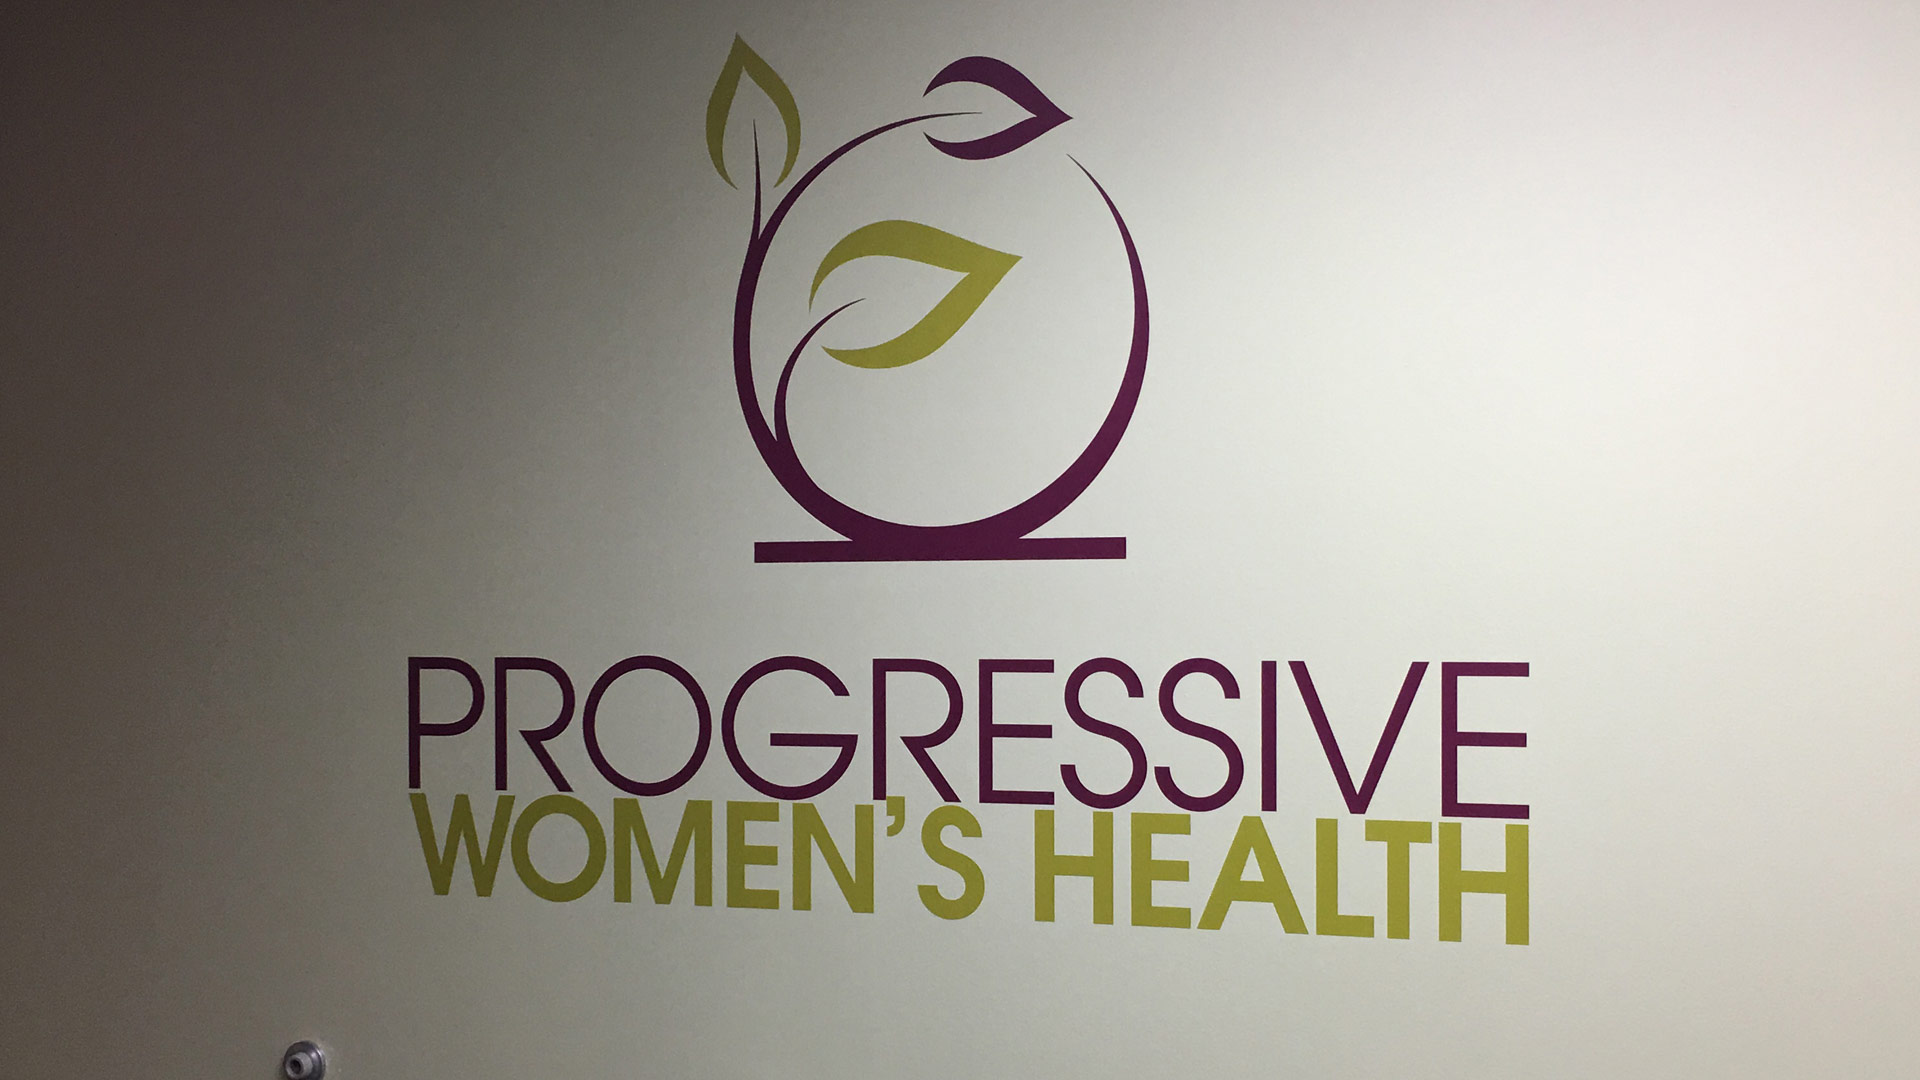 Progressive Women's Health